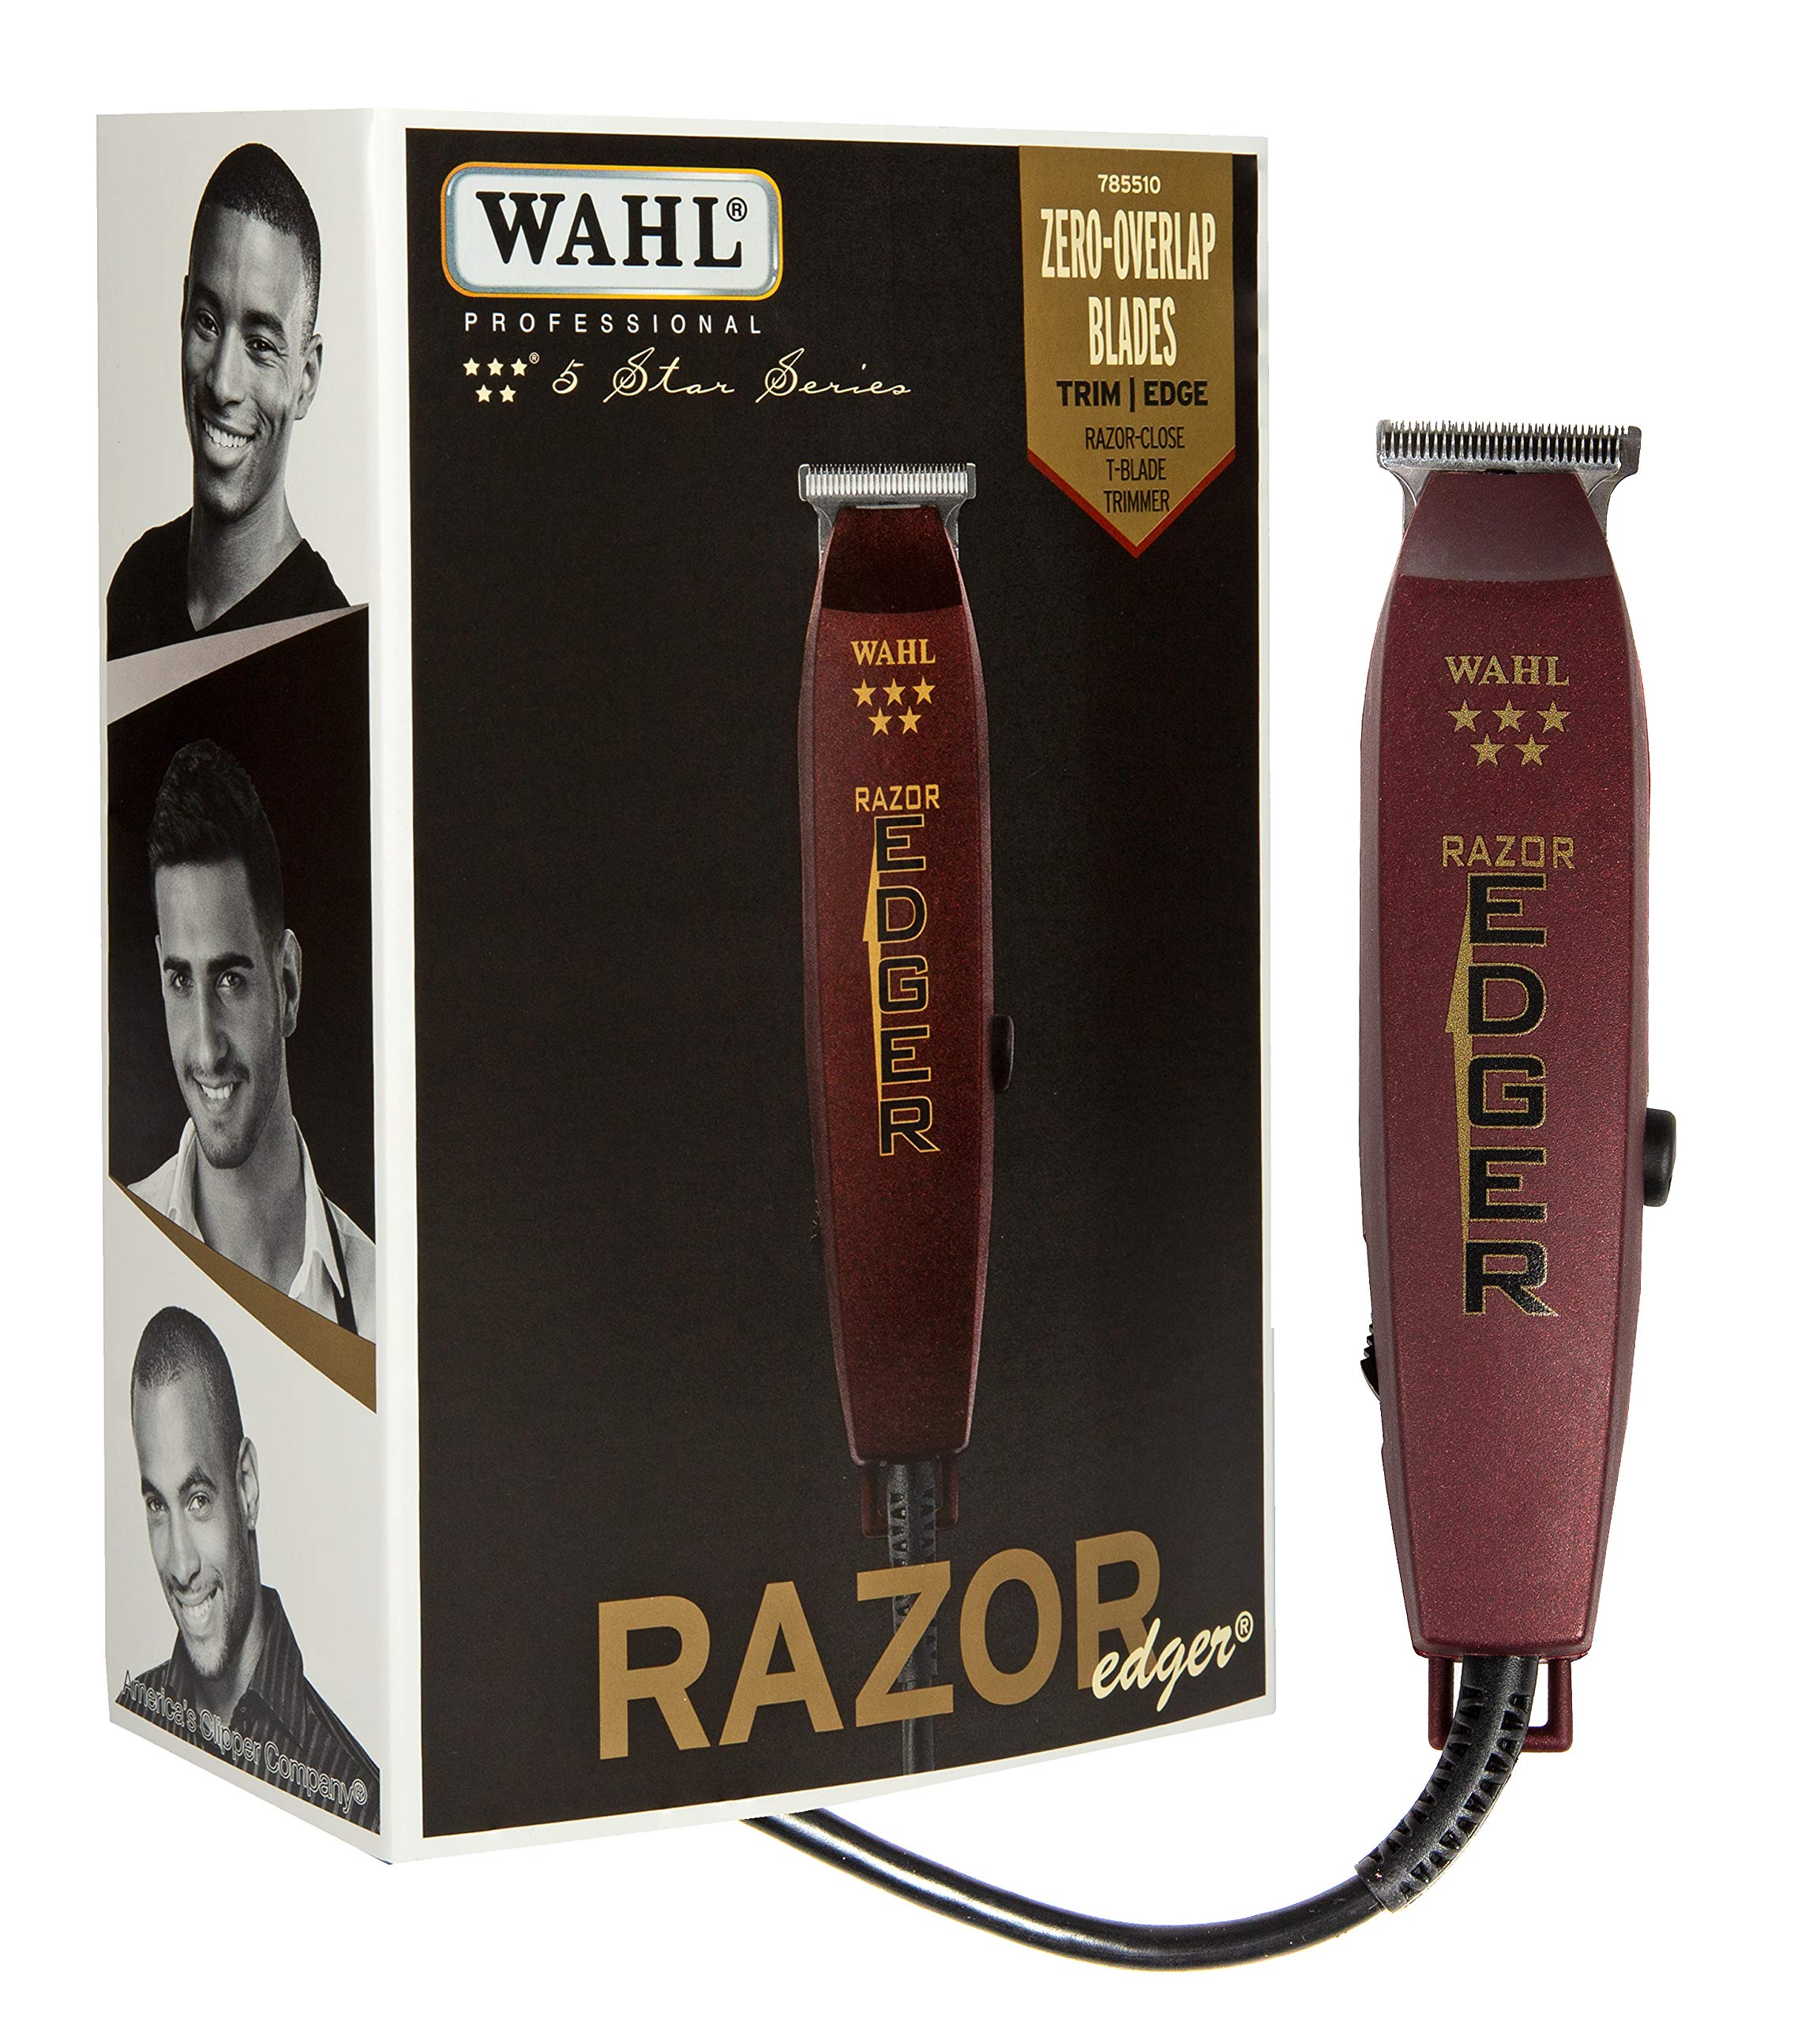 Wahl Professional 5-Star Razor Edger #8051 - Great for Barbers and Stylists - Razor Close Trimming and Edging - No Heat Build Up - Strong Electromagnetic Motor - Accessories Included by Wahl Professional